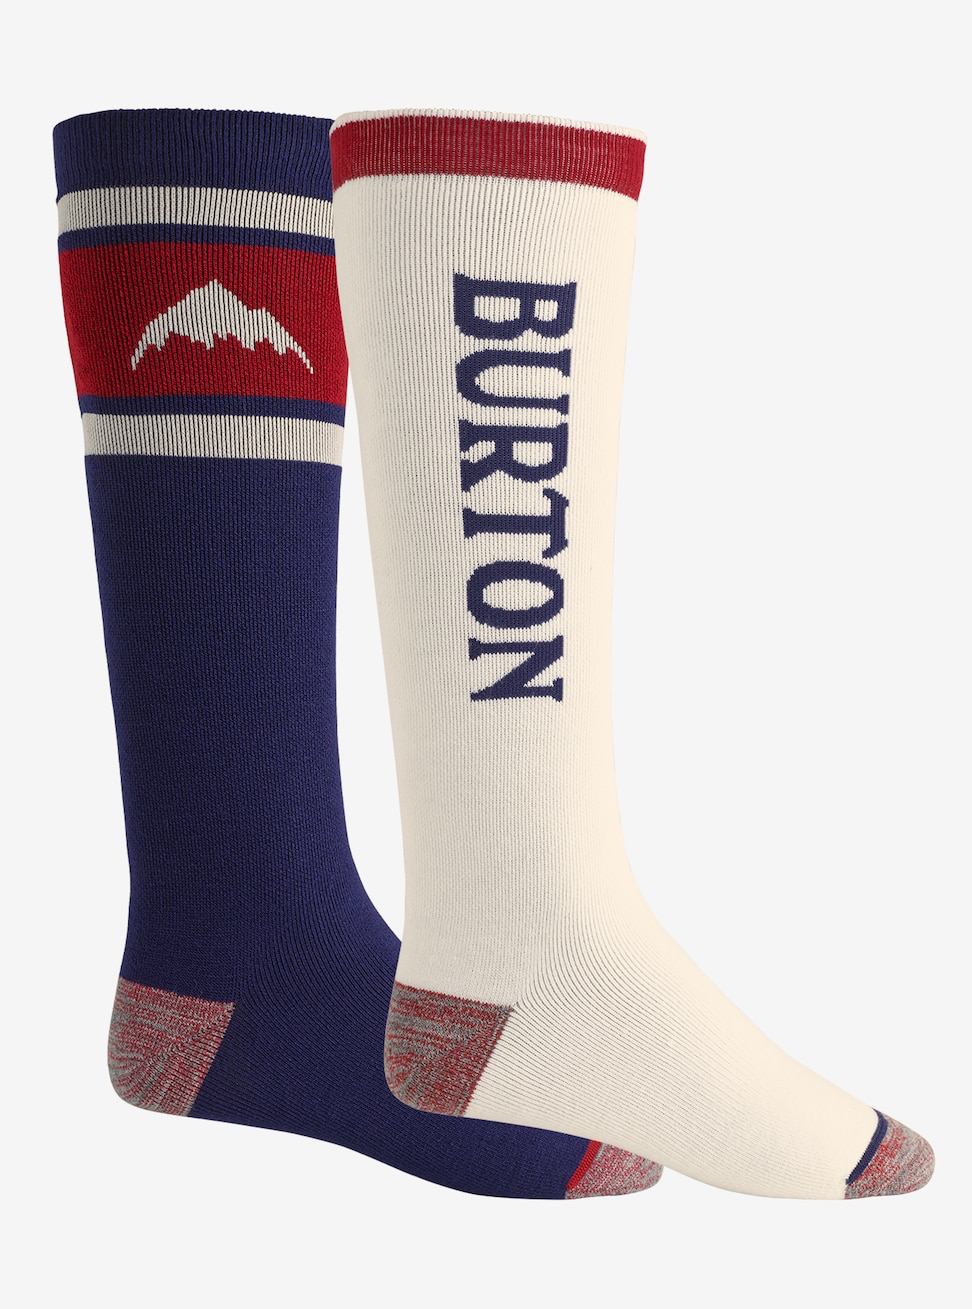 2019 Burton (2 Pack) Weekend Midweight Sock - Mood Indigo